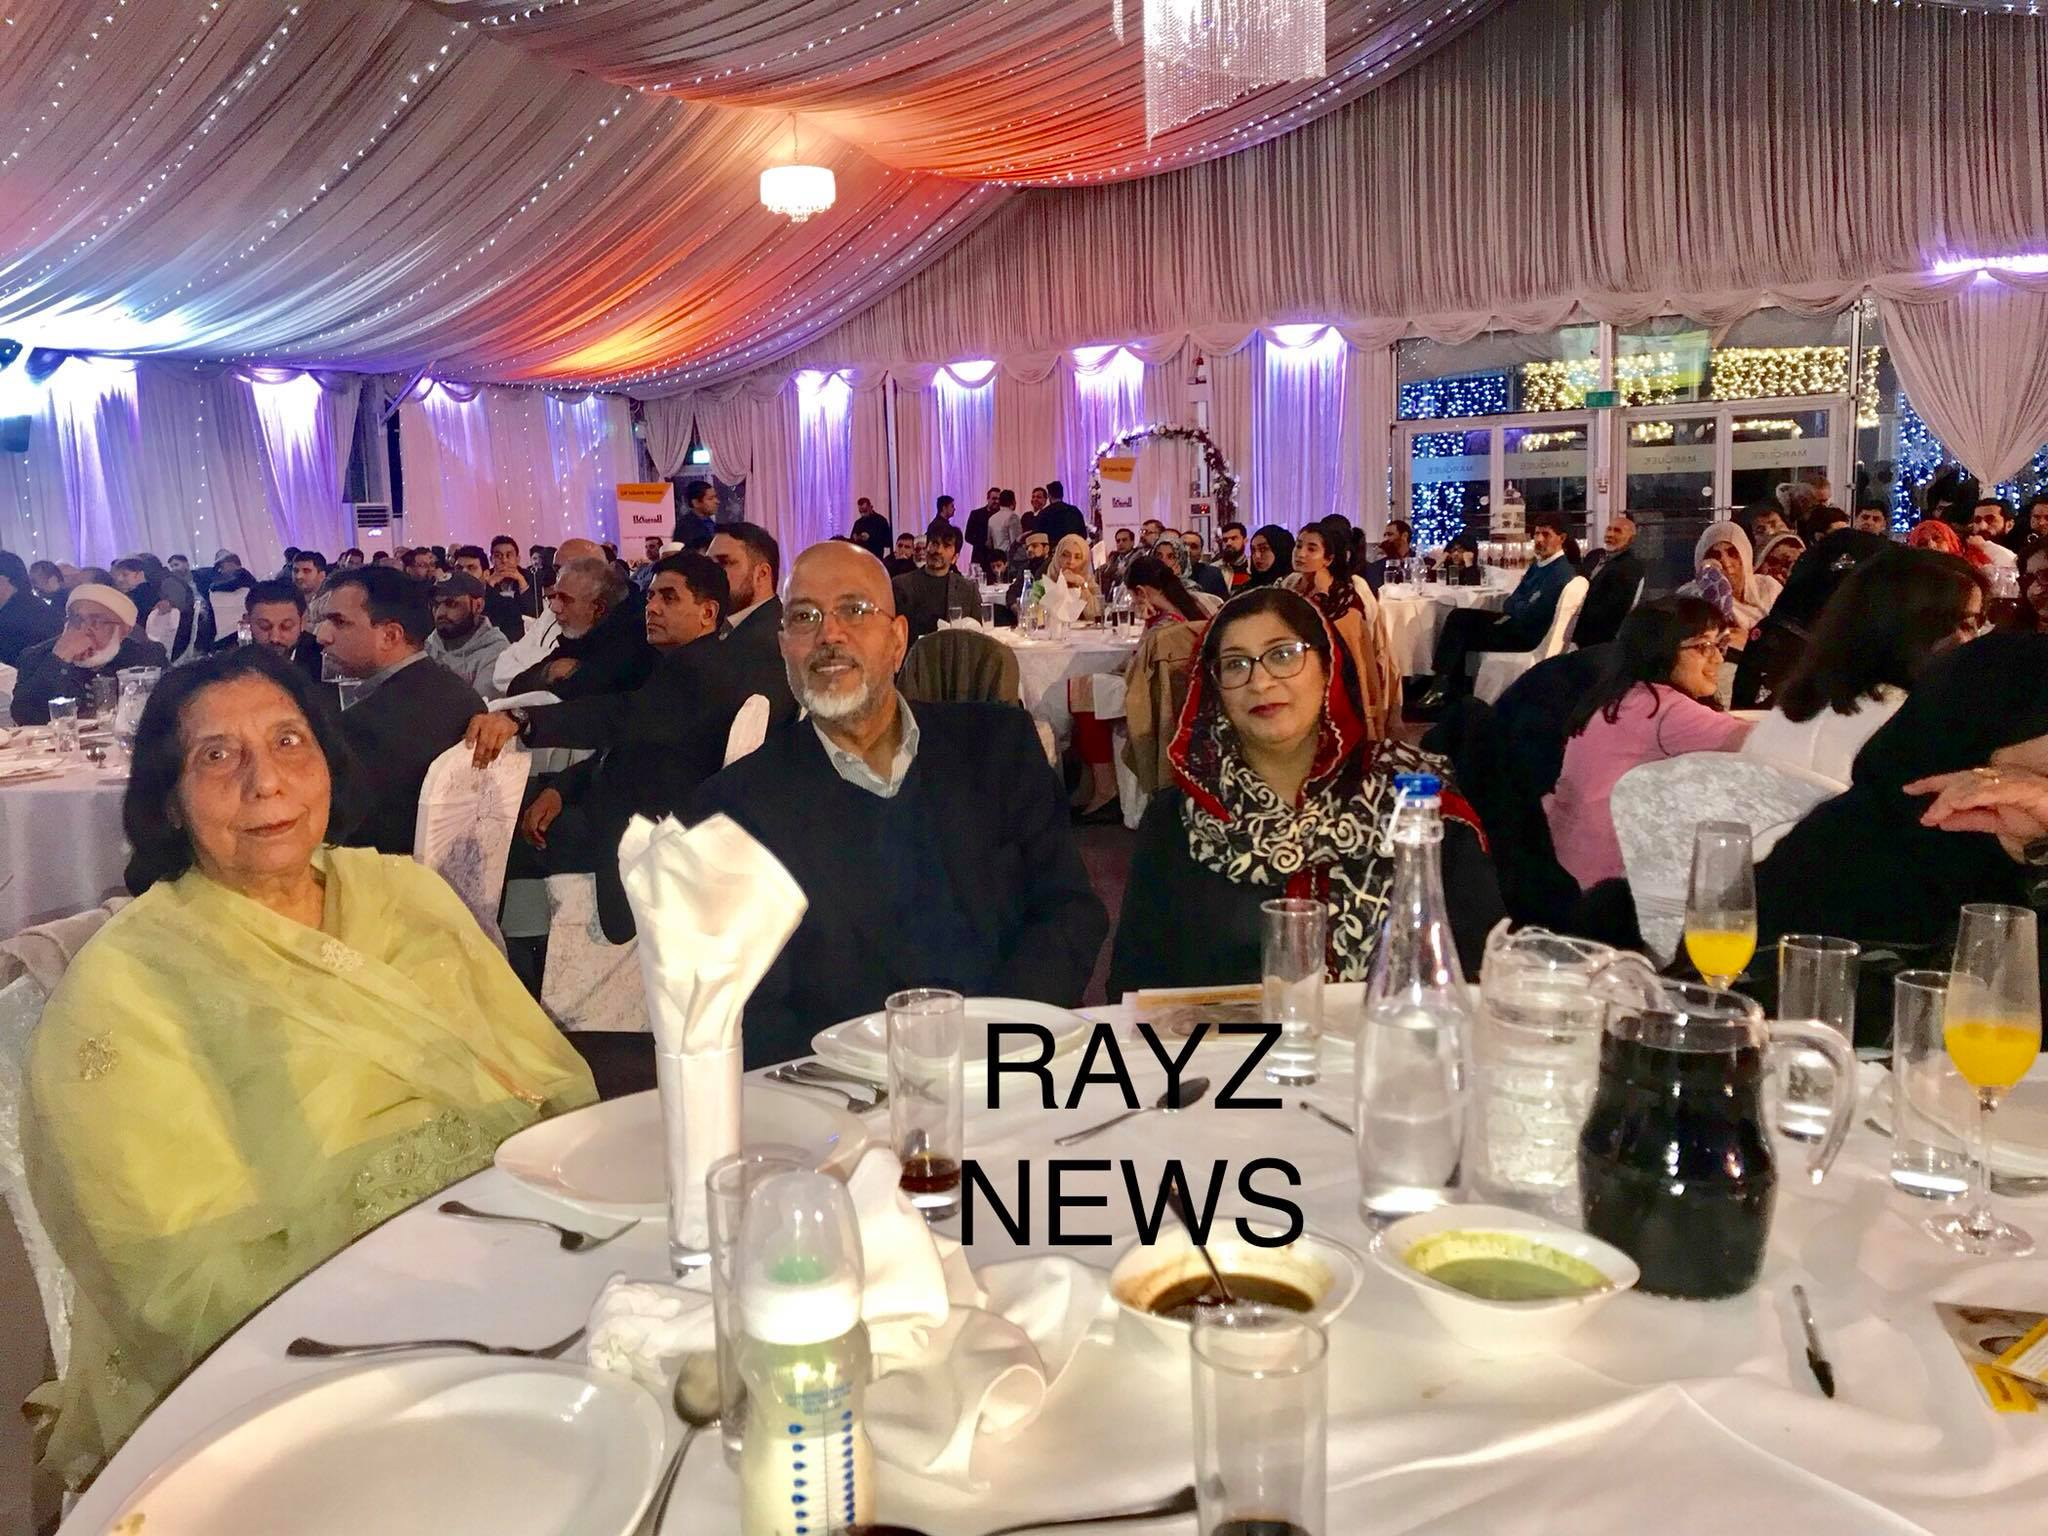 Mushaira with Anwar Masood a legend poet famous for his comic poetry